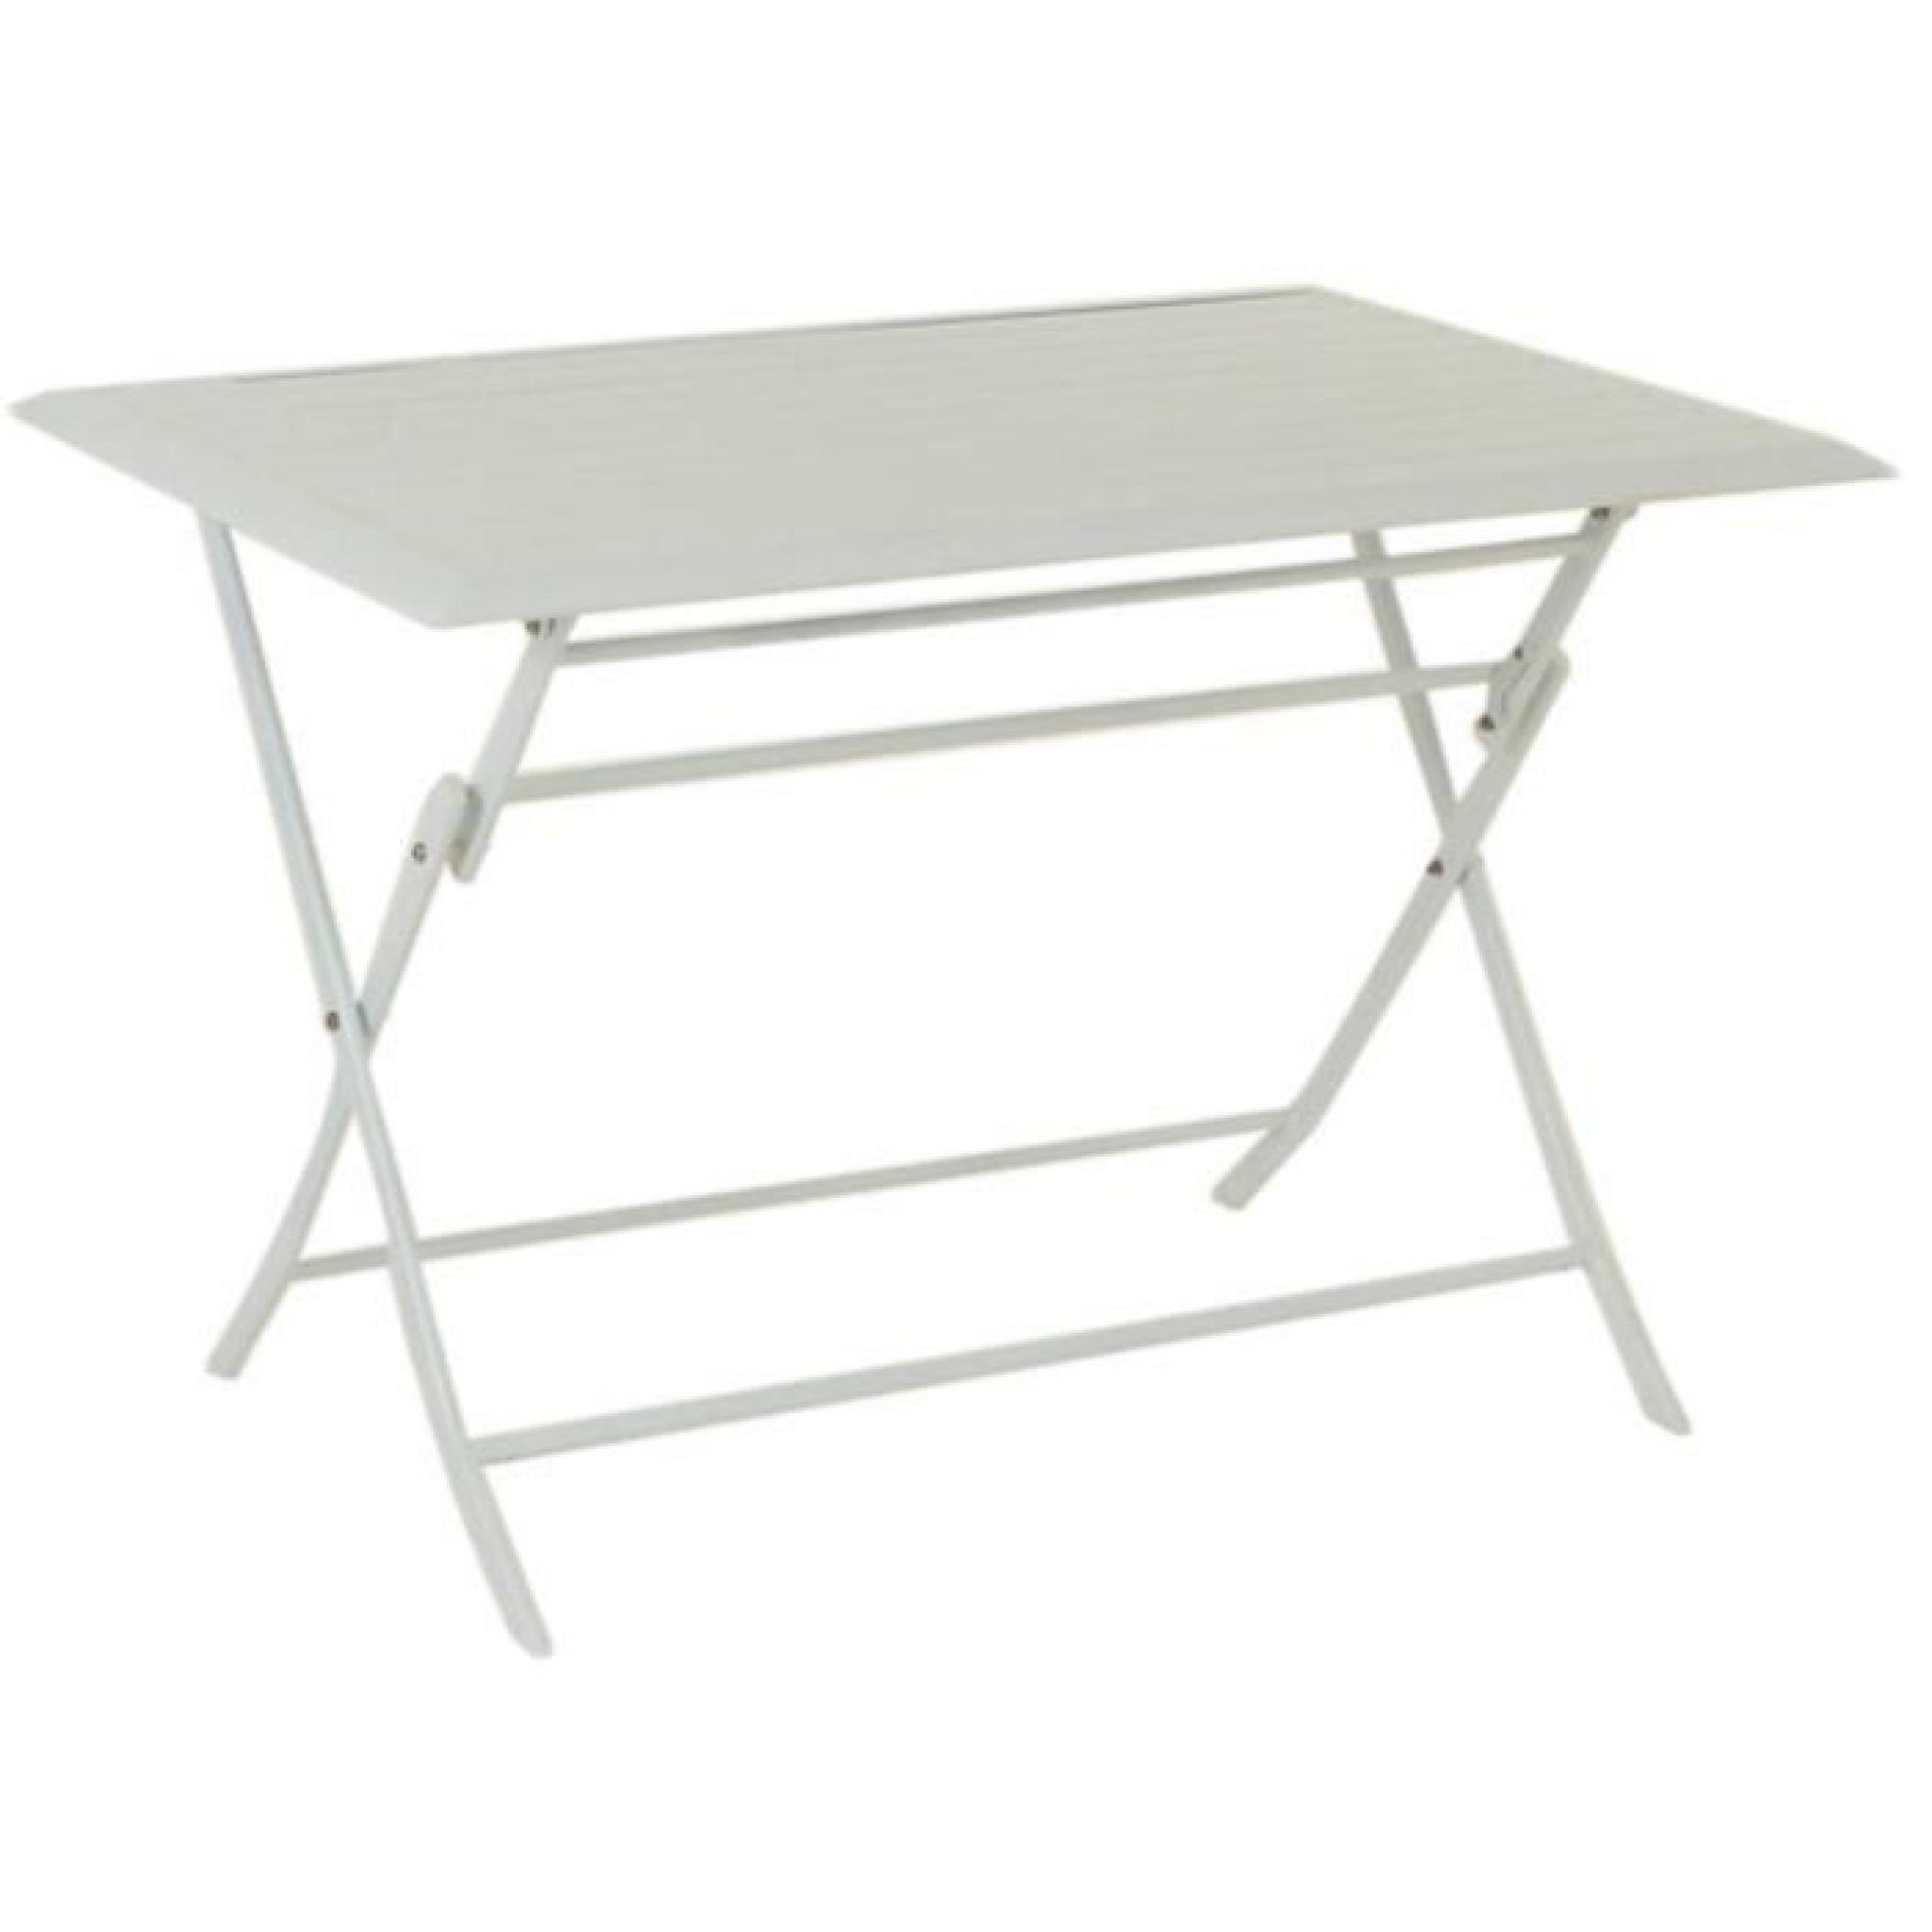 Table Aluminium Pliante Table Pliante Rectangulaire En Aluminium Coloris Blanc Dim L 110 X P 71 X H 71 Cm